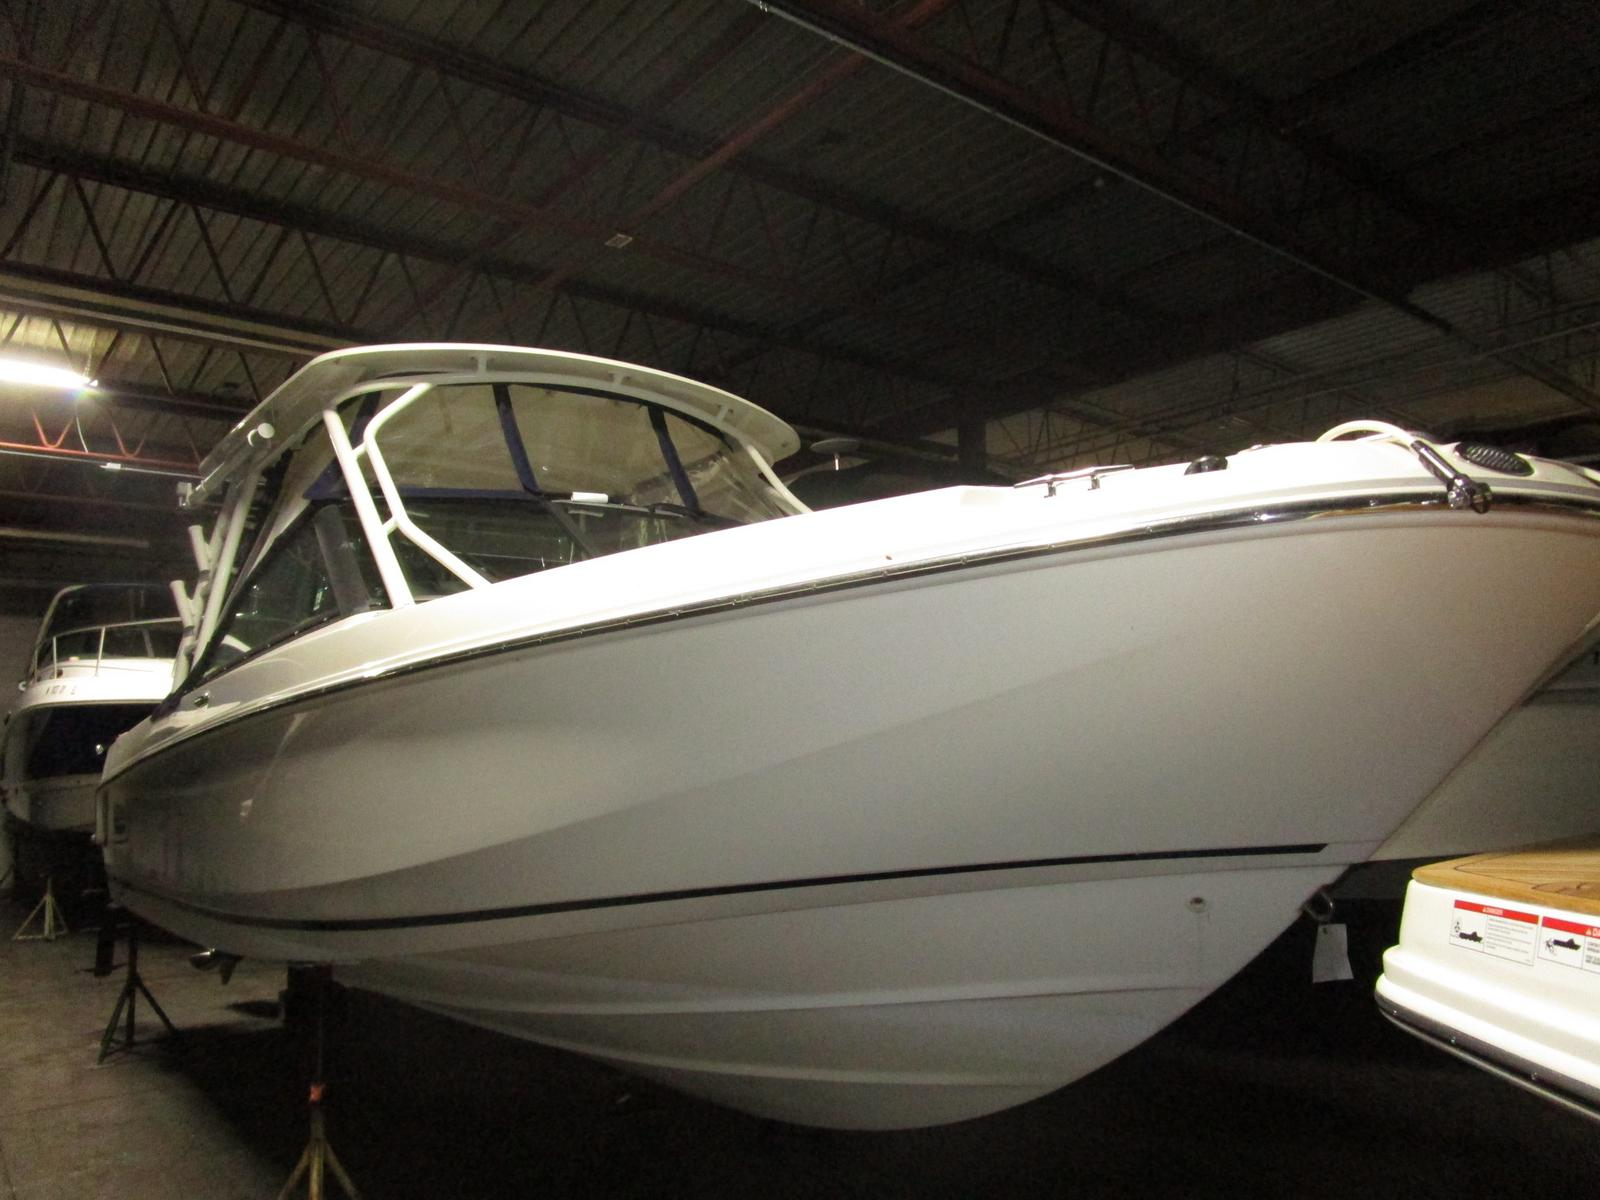 2016 Boston Whaler boat for sale, model of the boat is 270 Vantage & Image # 1 of 10